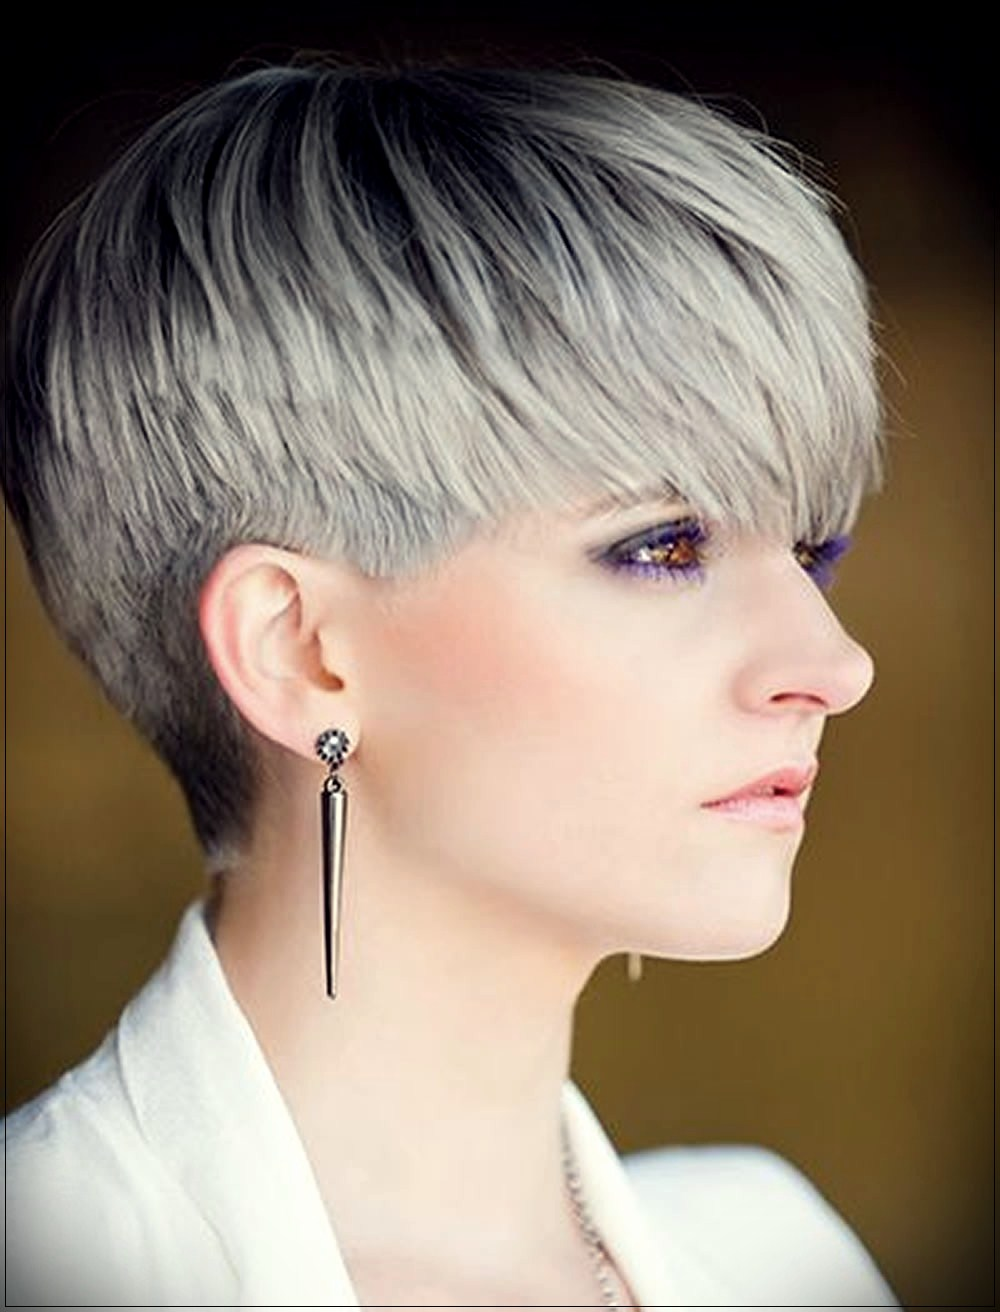 Pixie cuts for 2018 are what are in! - Pixie cuts for 2018 3